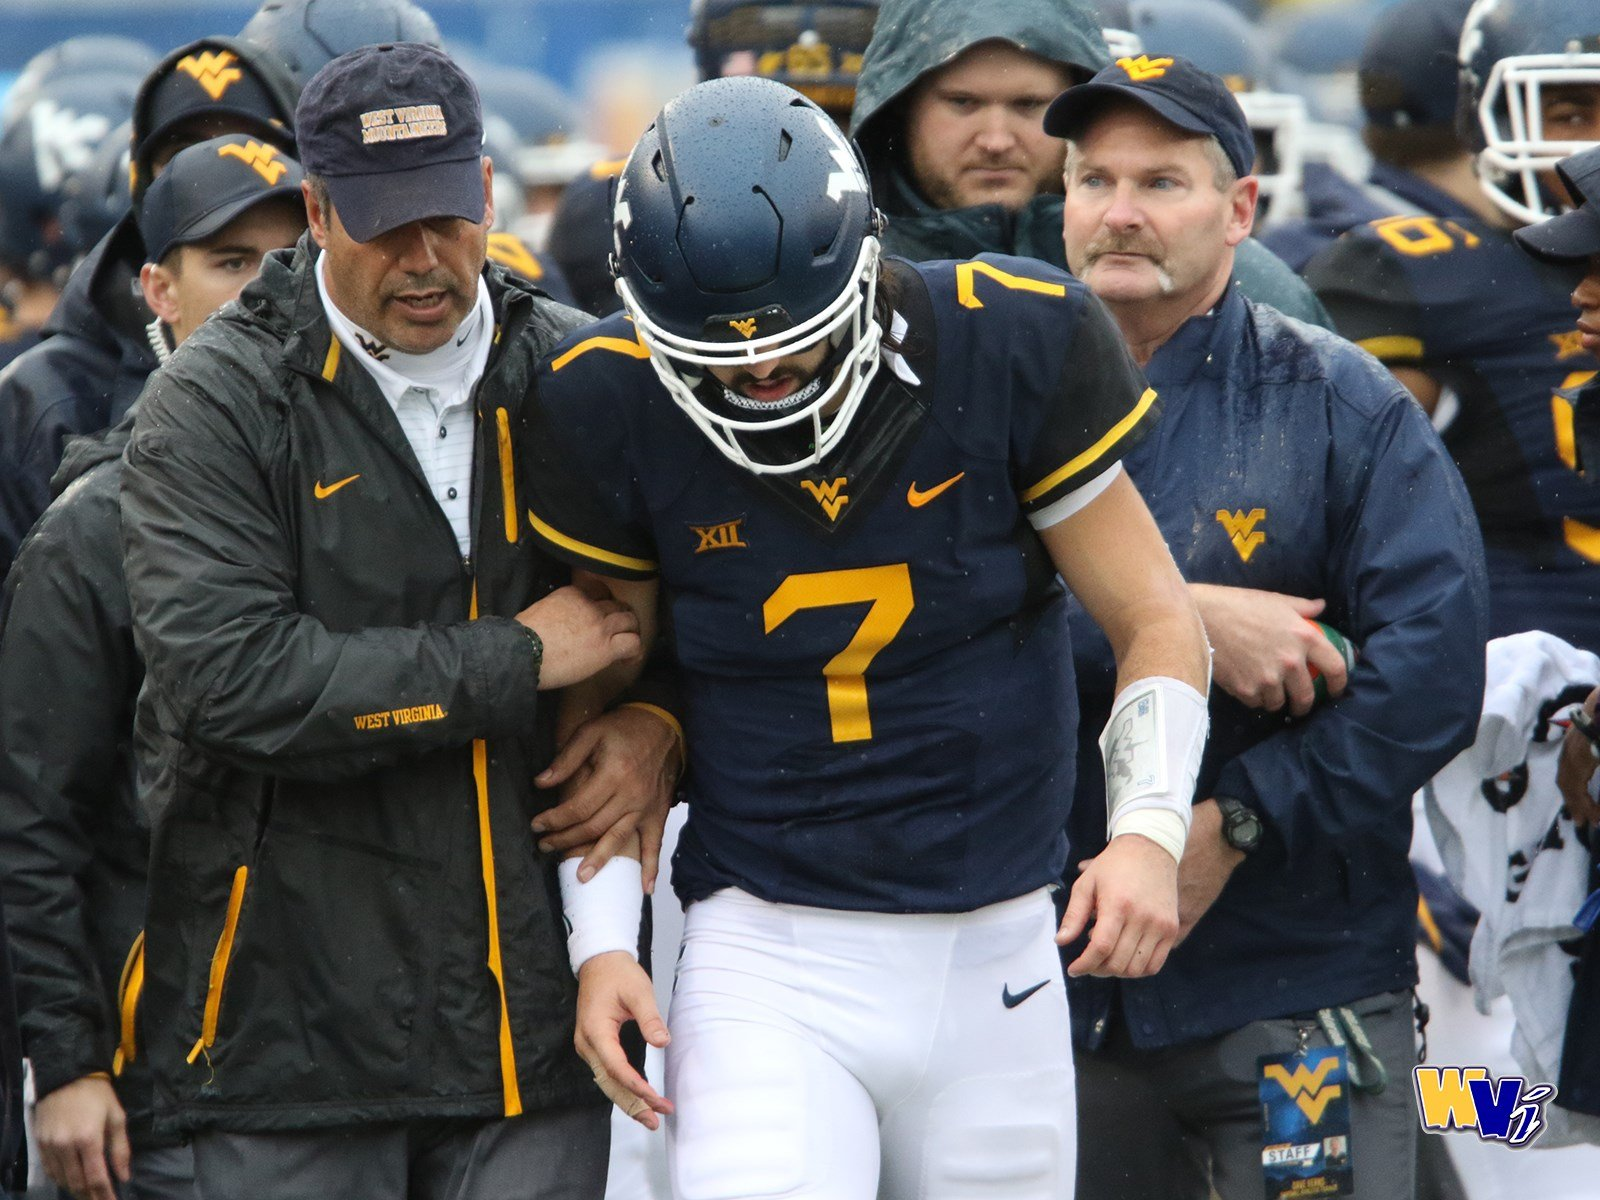 Will Grier heads to the locker room after disloacting his finger on Saturday. (PHOTO: Scott Lituchy)